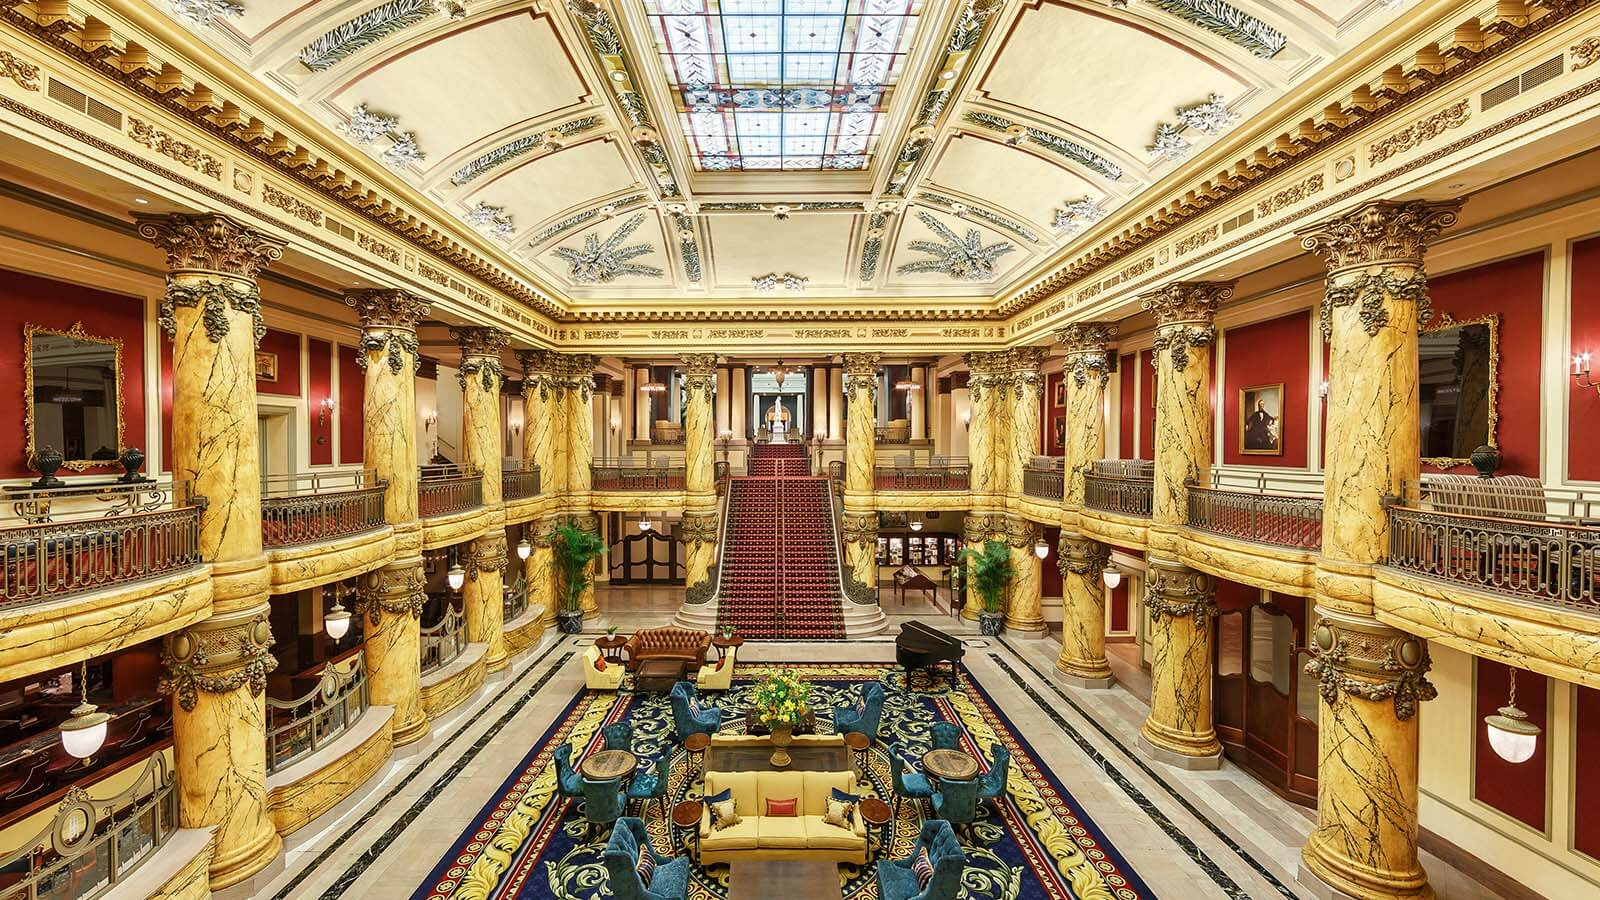 Grand interior lobby of The Jefferson Hotel in Richmond, Virginia.